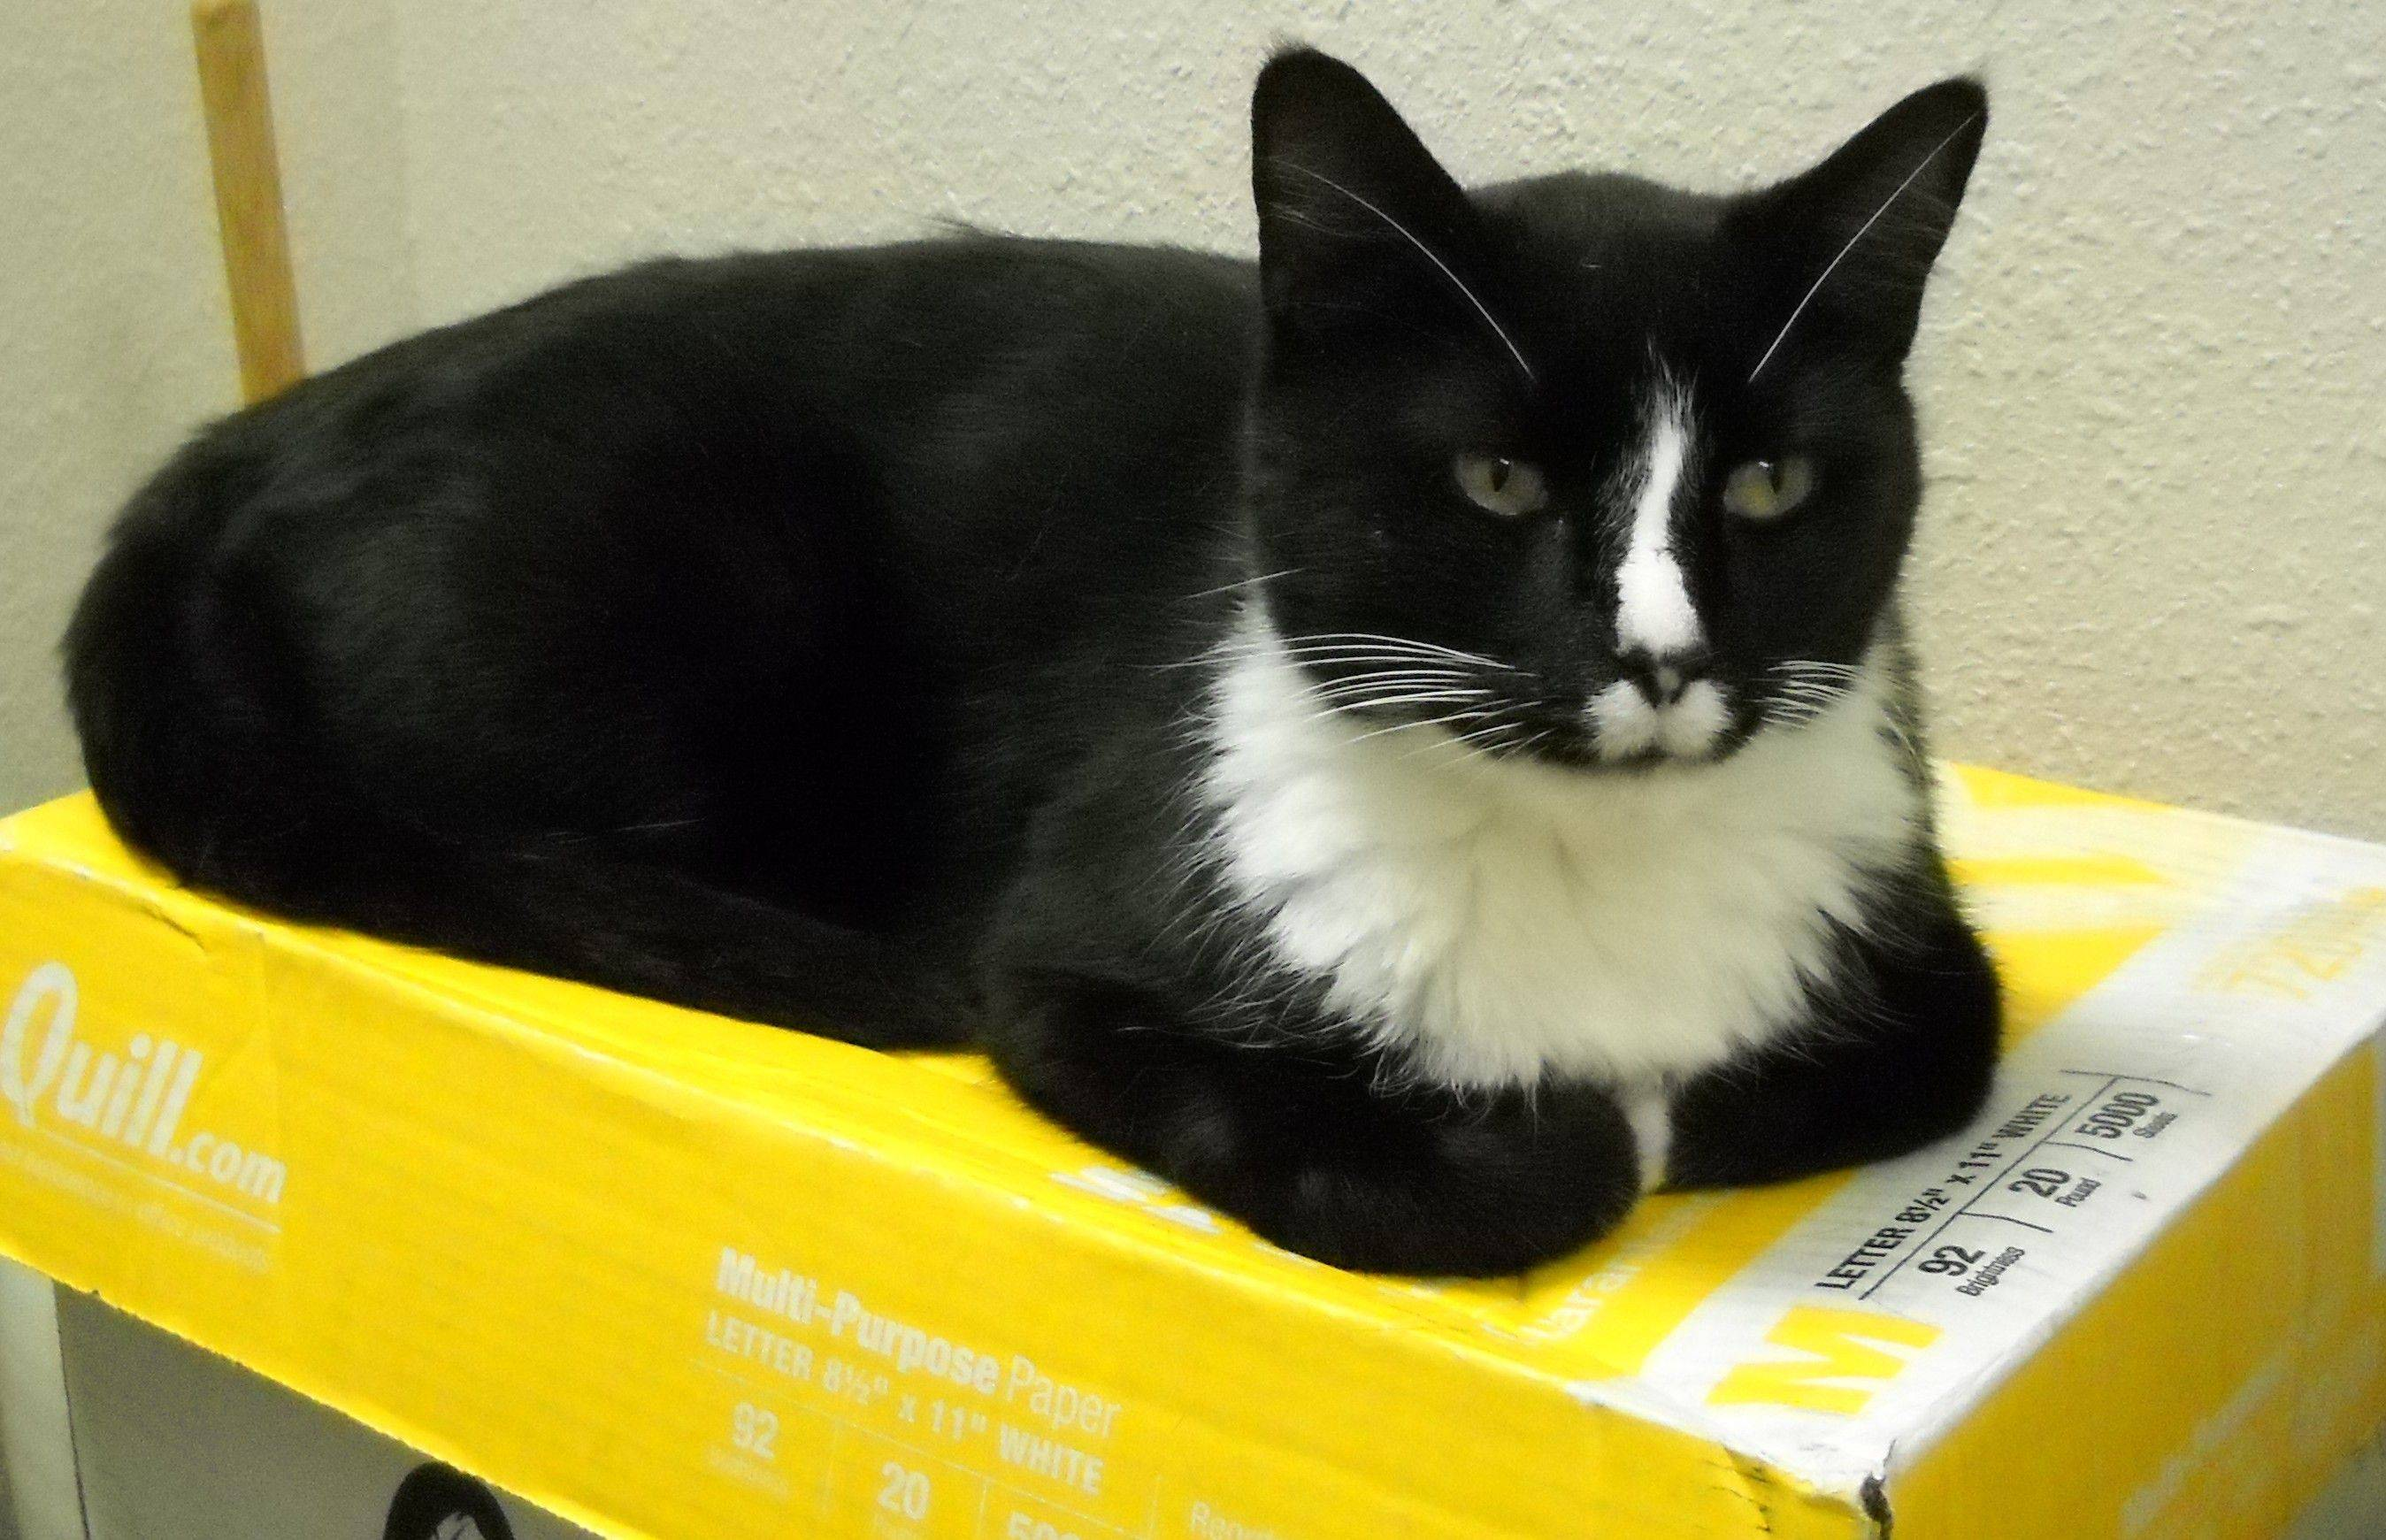 Comiskey gets back into his routine of camping out on copier paper boxes this week at the Brandon law office.